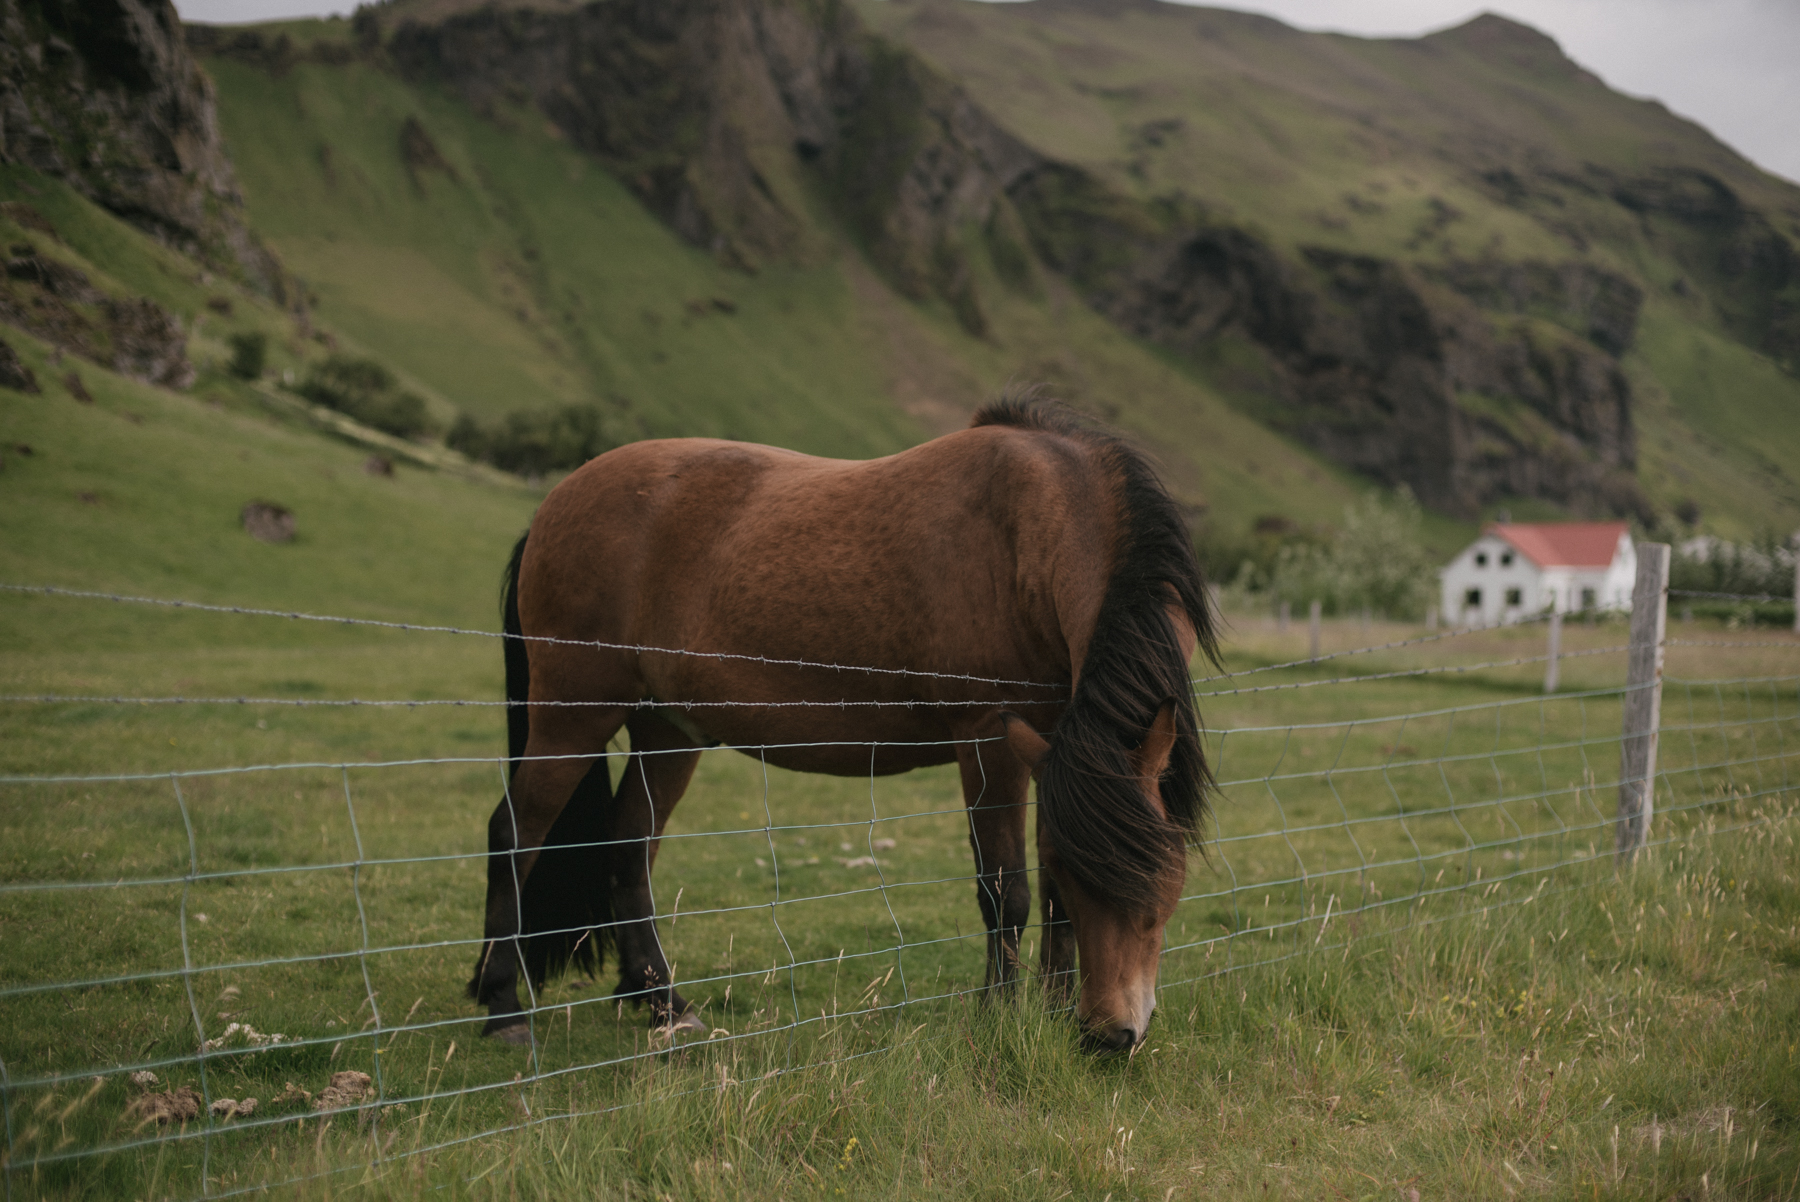 Daring Wanderer Photography - Daring Wanderer - Iceland travel photography - Iceland - West Fjords - Hornstrandir - Hornbjarg - hiking - adventure - explore - camping - mountains - majestic landscapes - Icelandic horses - Icelandic landscape